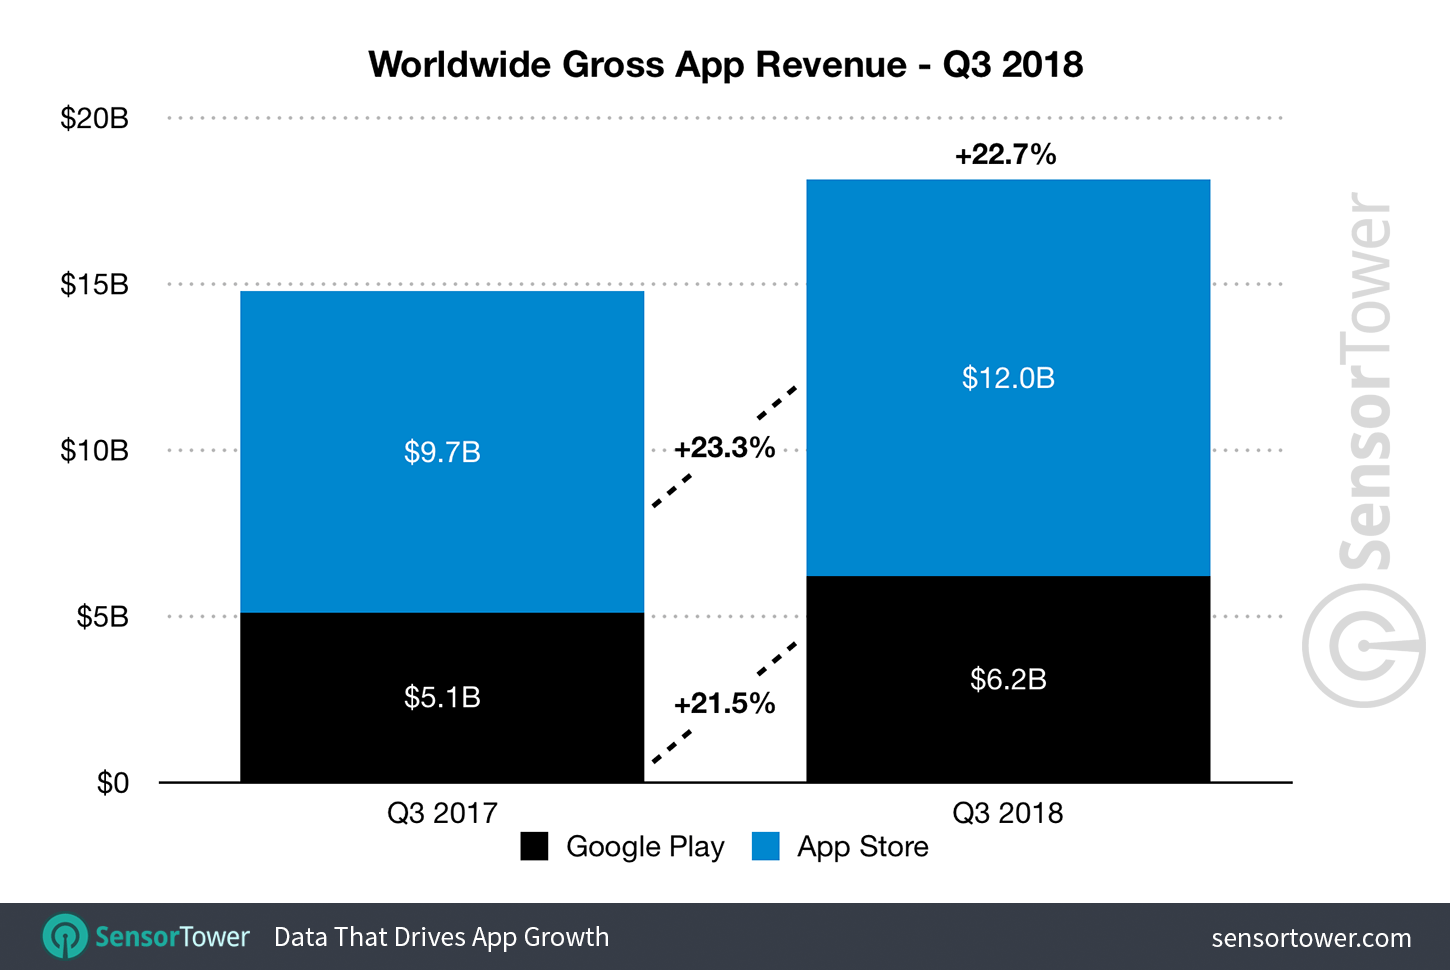 q3-2018-app-revenue-worldwide